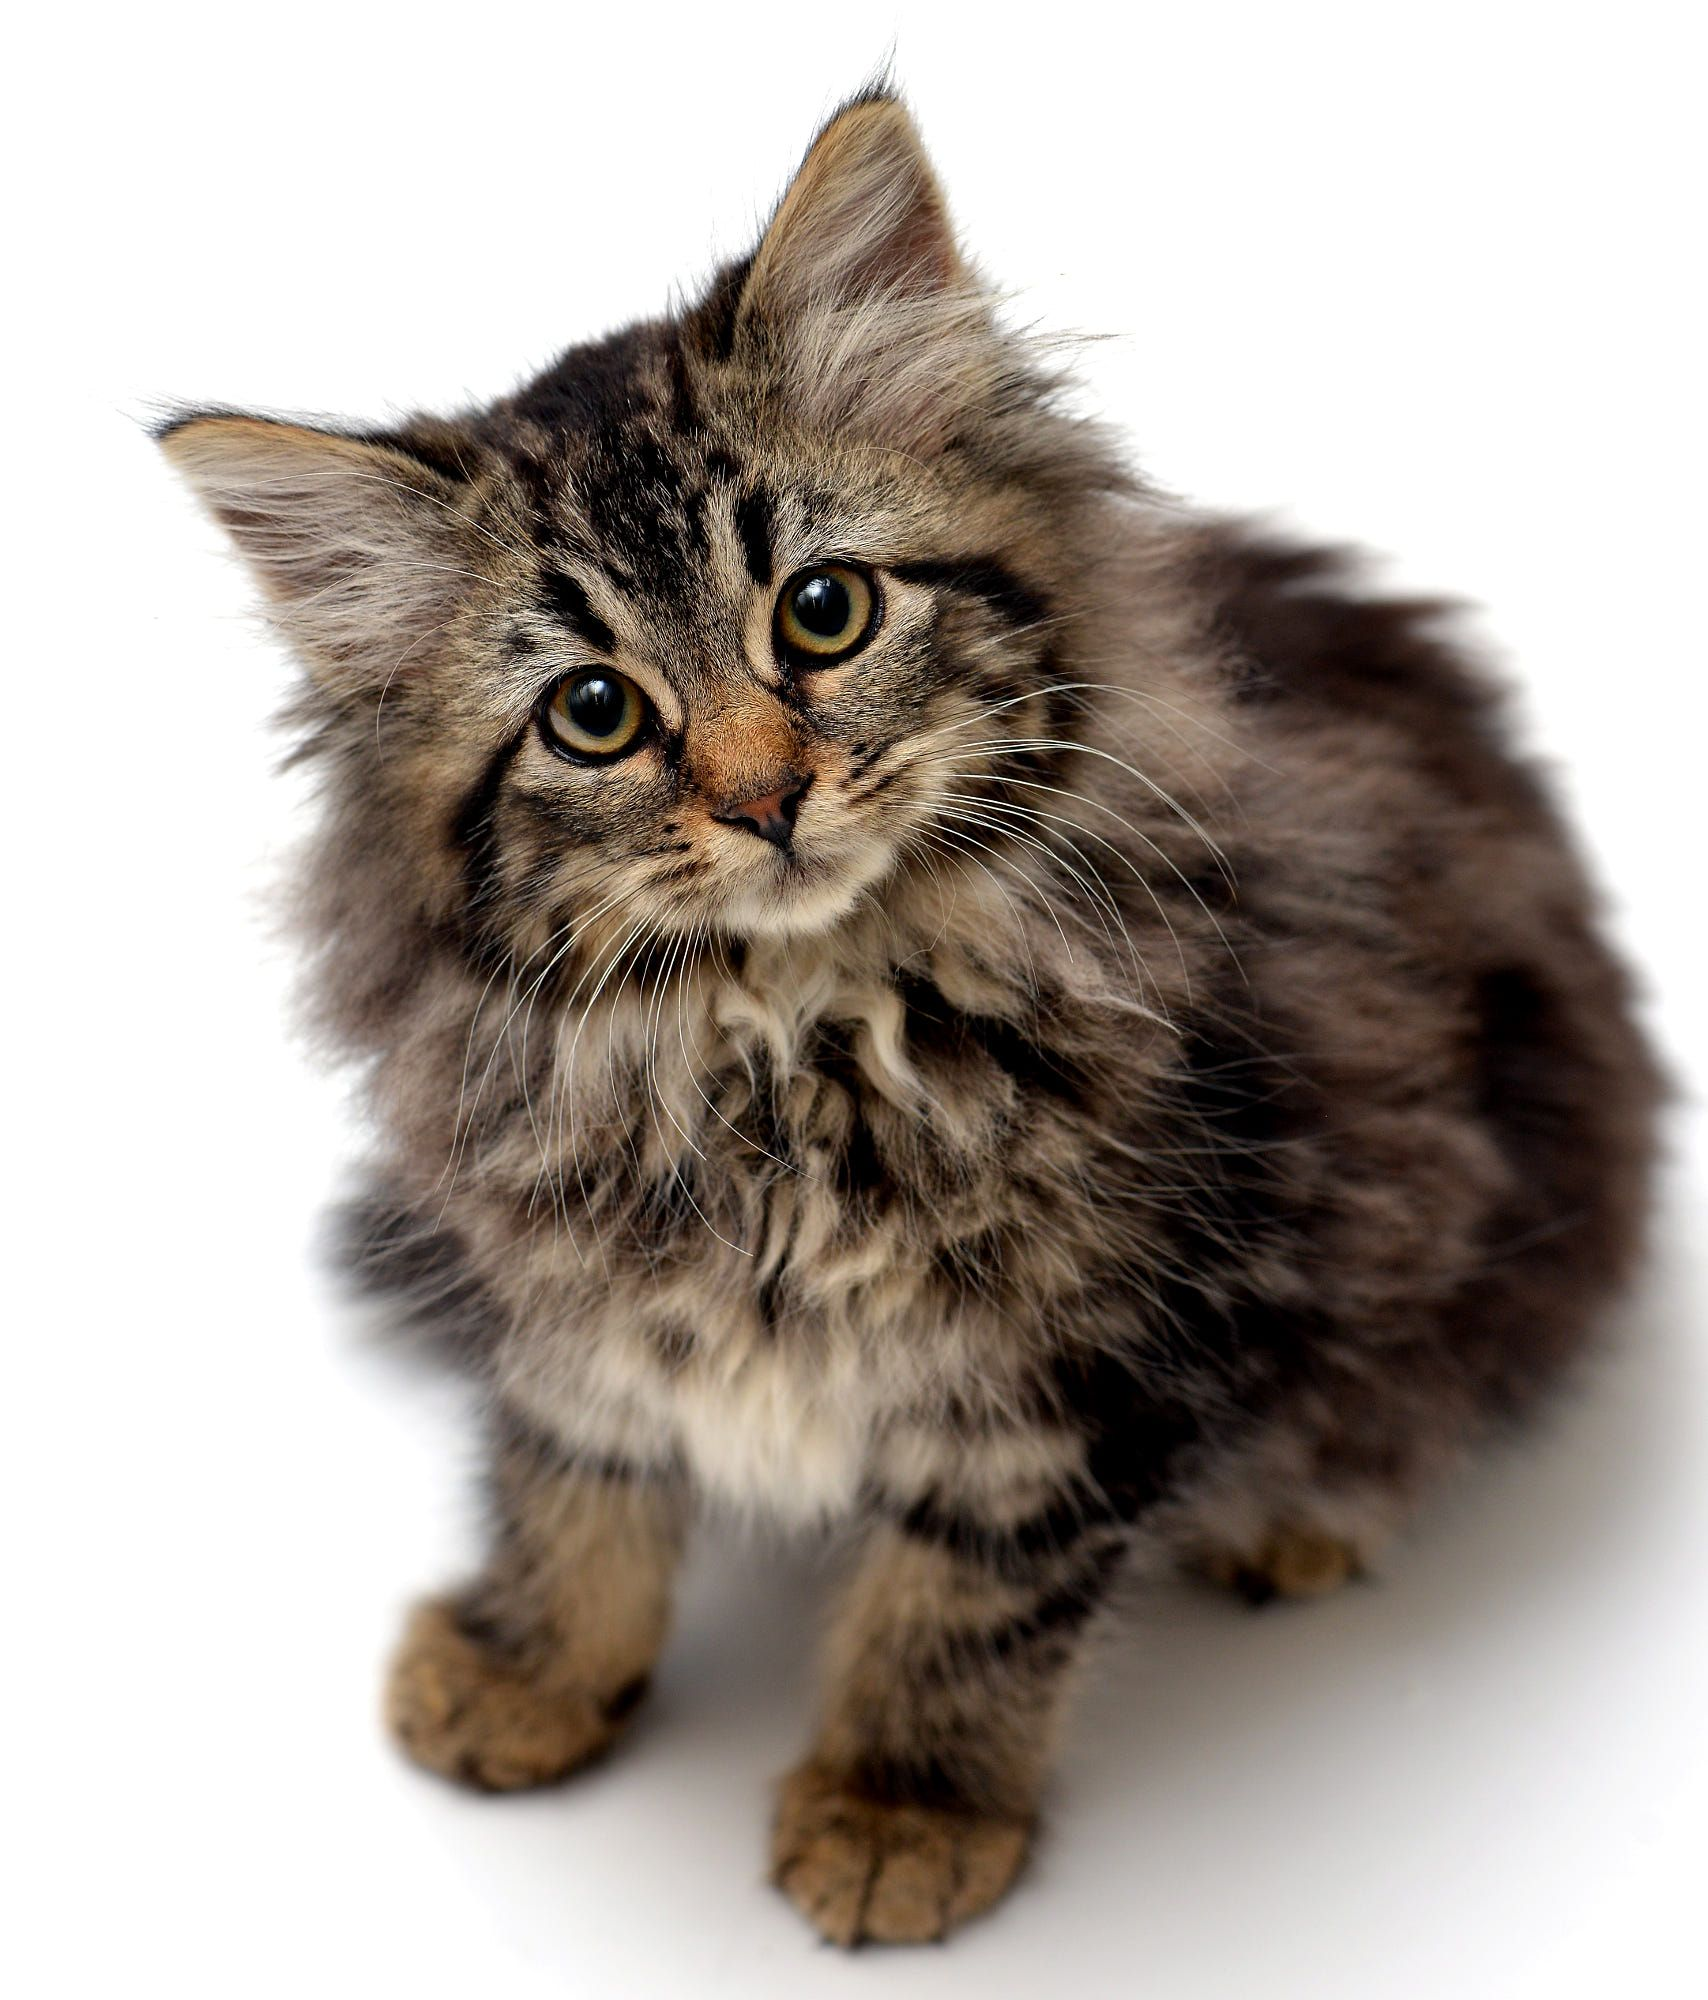 This is a longhair tabby kitten named Ginny. Russian